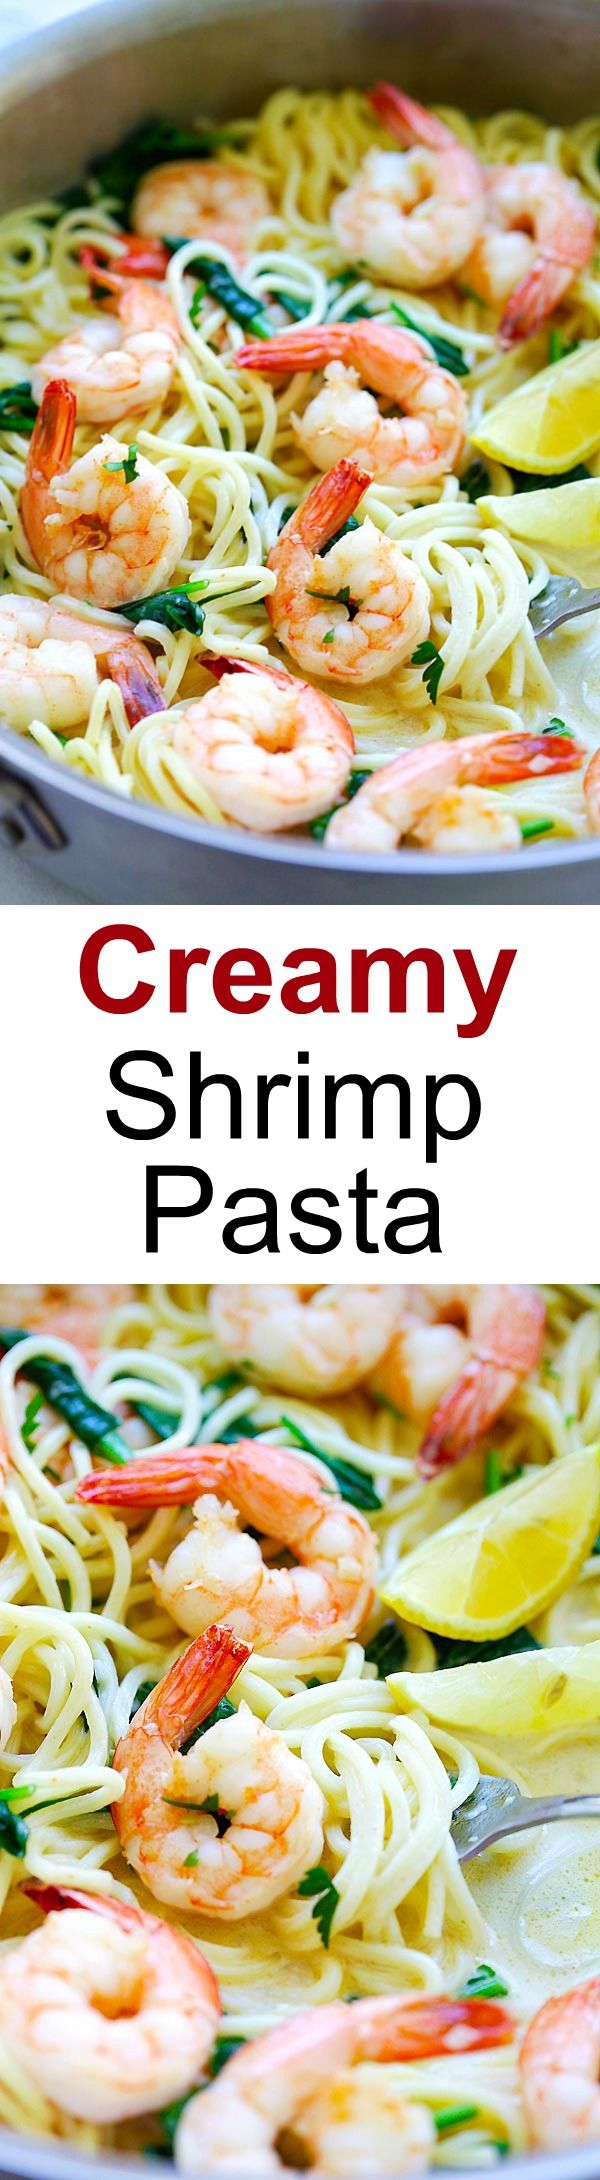 Creamy Shrimp Pasta Creamy Shrimp Pasta – easy pasta recipe with shrimp, spaghetti in a buttery and creamy sauce. Cooked in one pot, dinner is ready in 20 mins   rasamalaysia.com